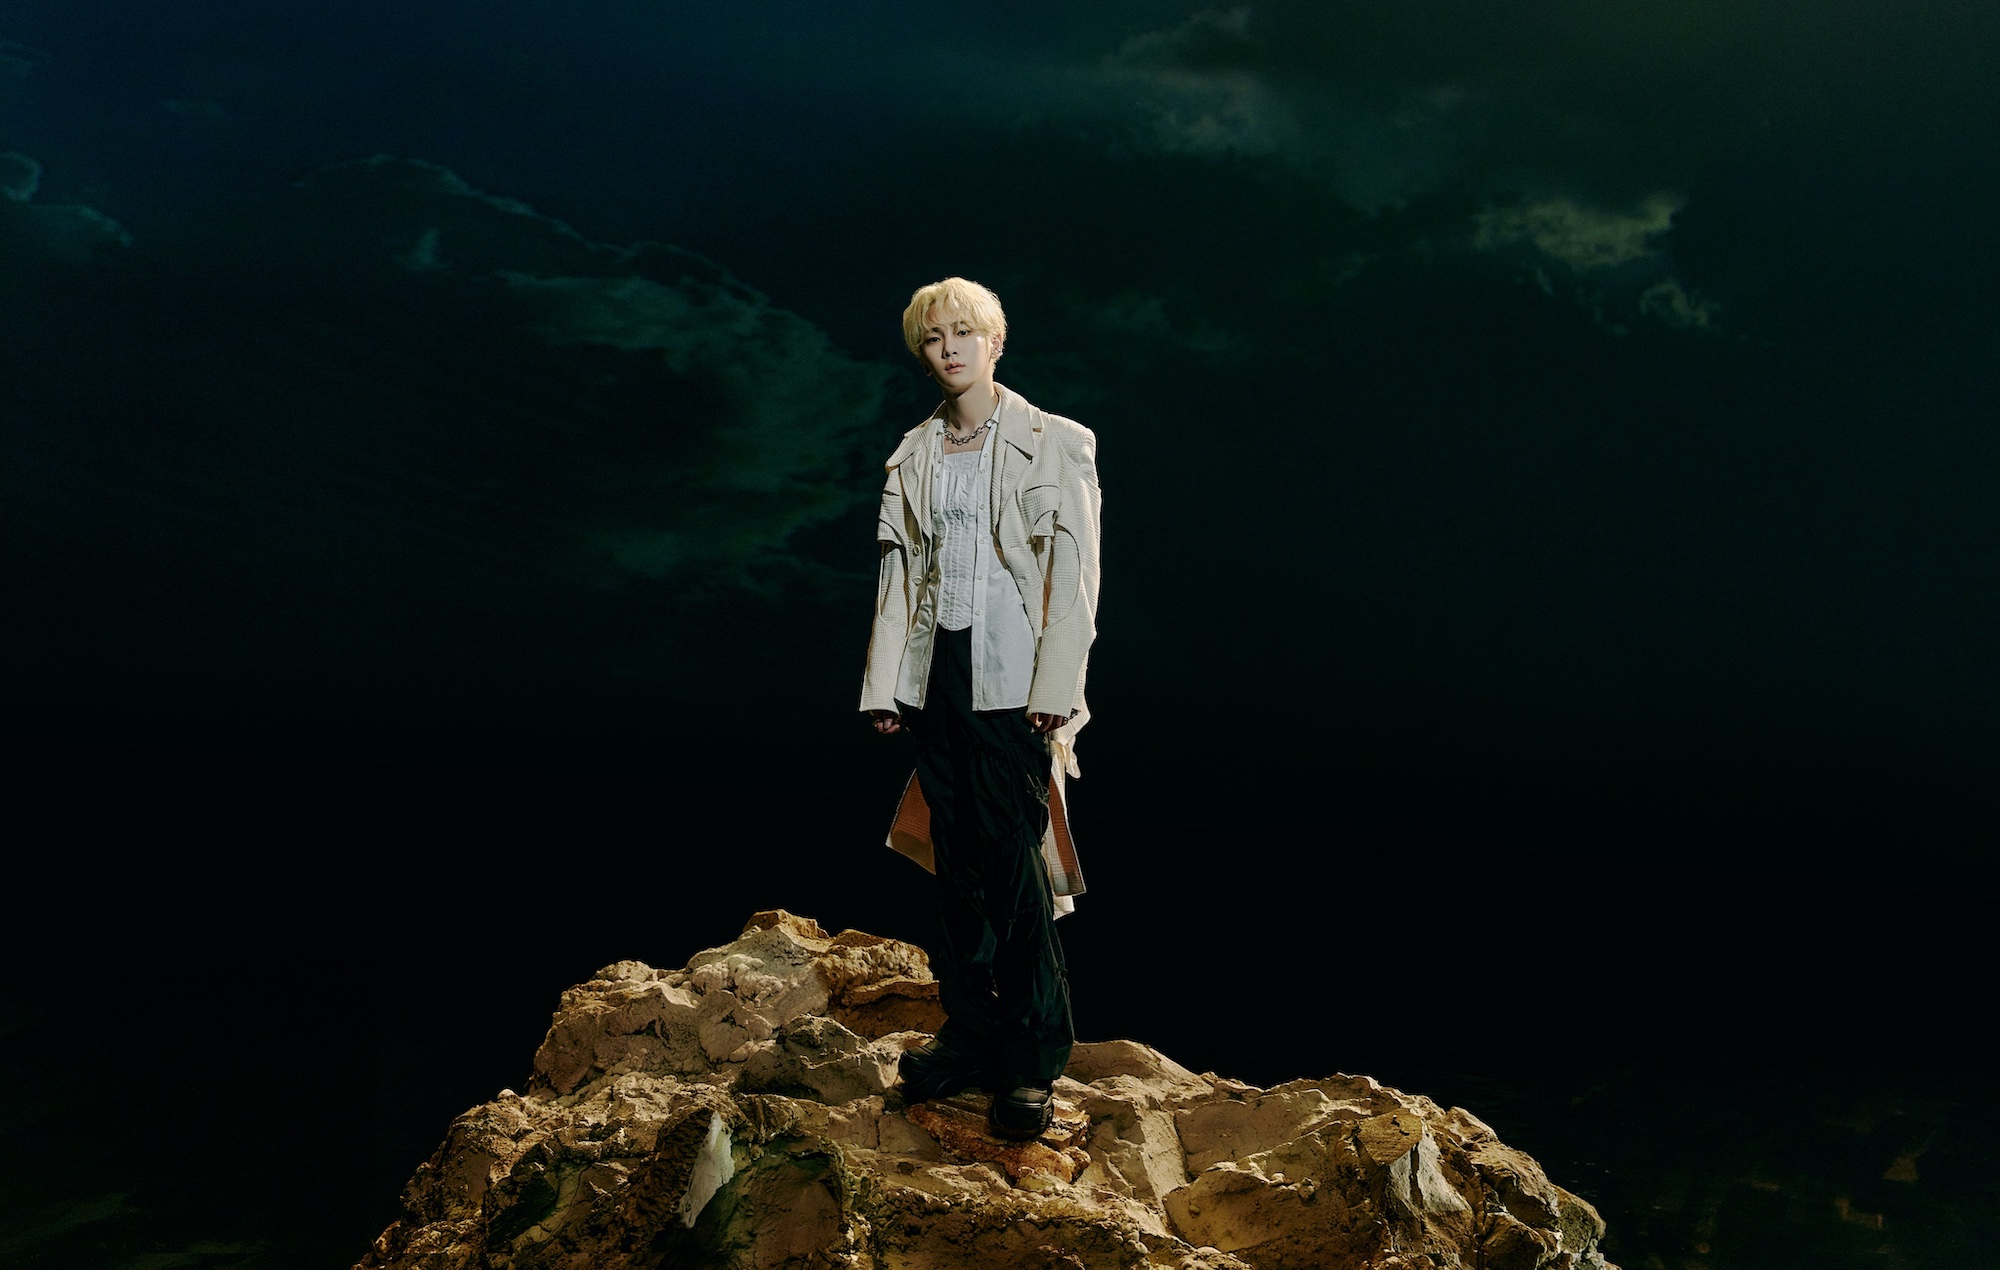 SHINee's Key teases solo single 'Hate That', featuring Girls' Generation's  Taeyeon